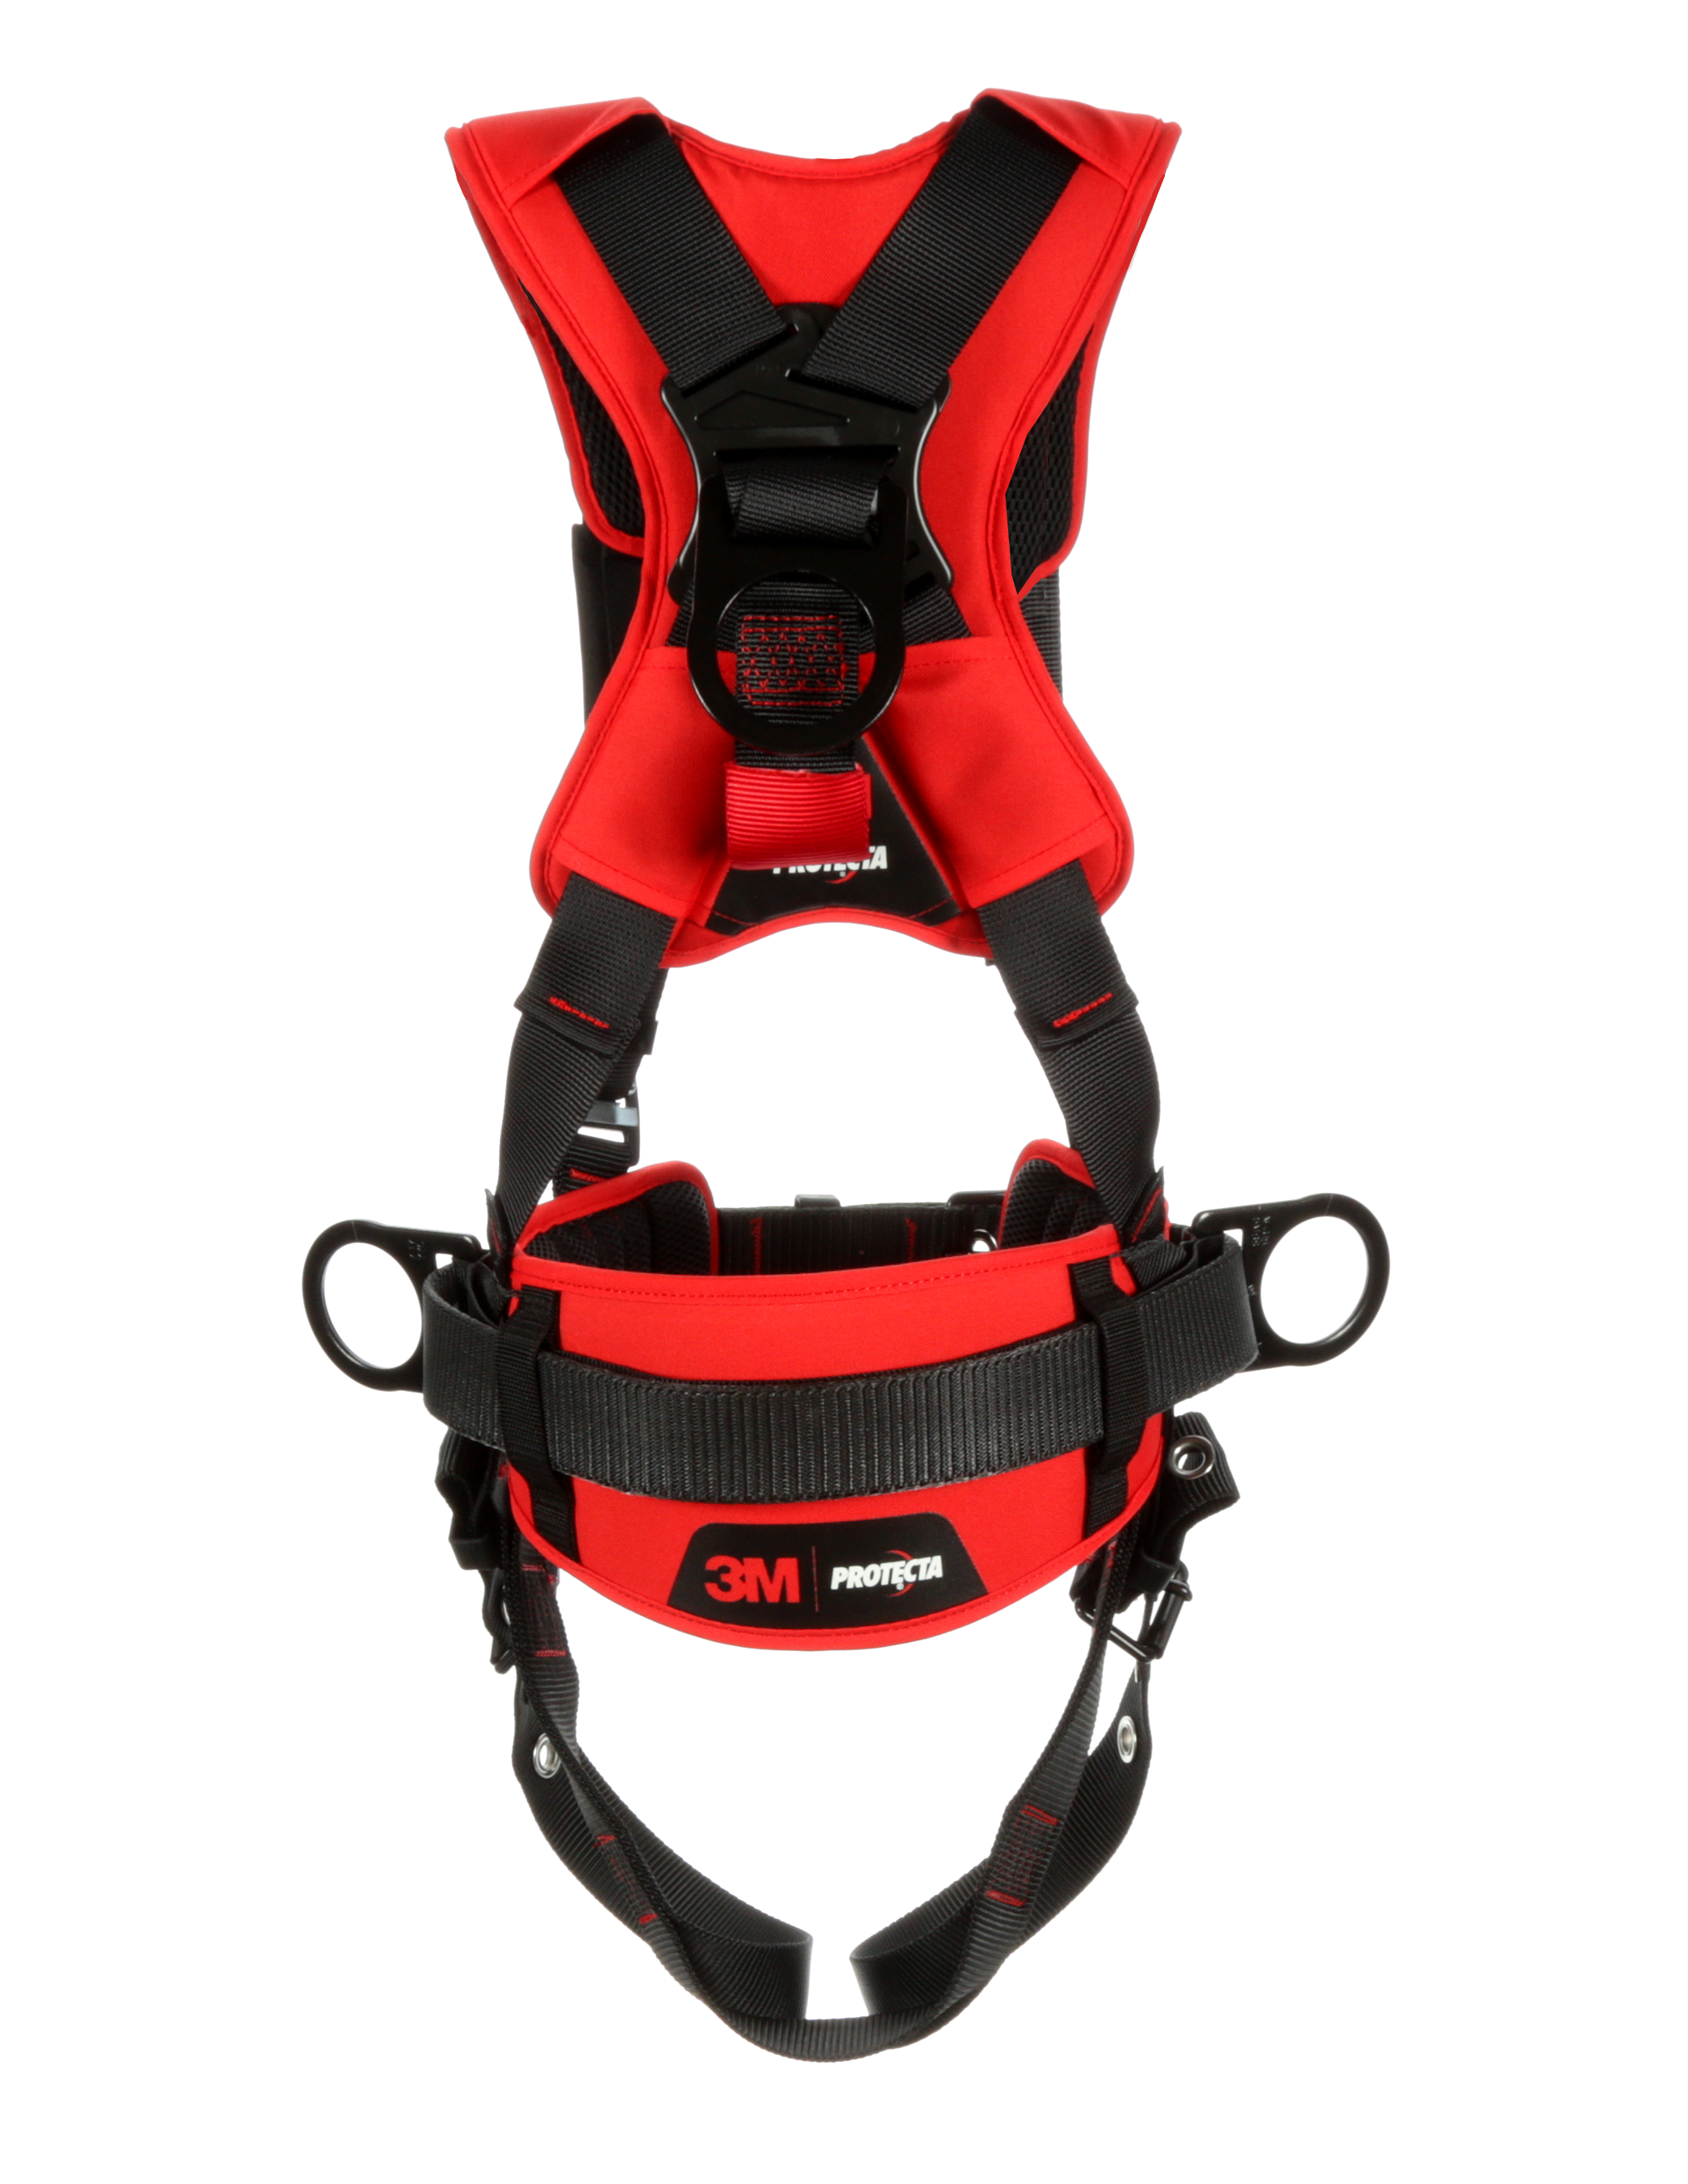 Protecta Comfort Construction-Style Harness, Pass-Through Chest, Tongue-Buckle Legs, Side D-Rings, Back